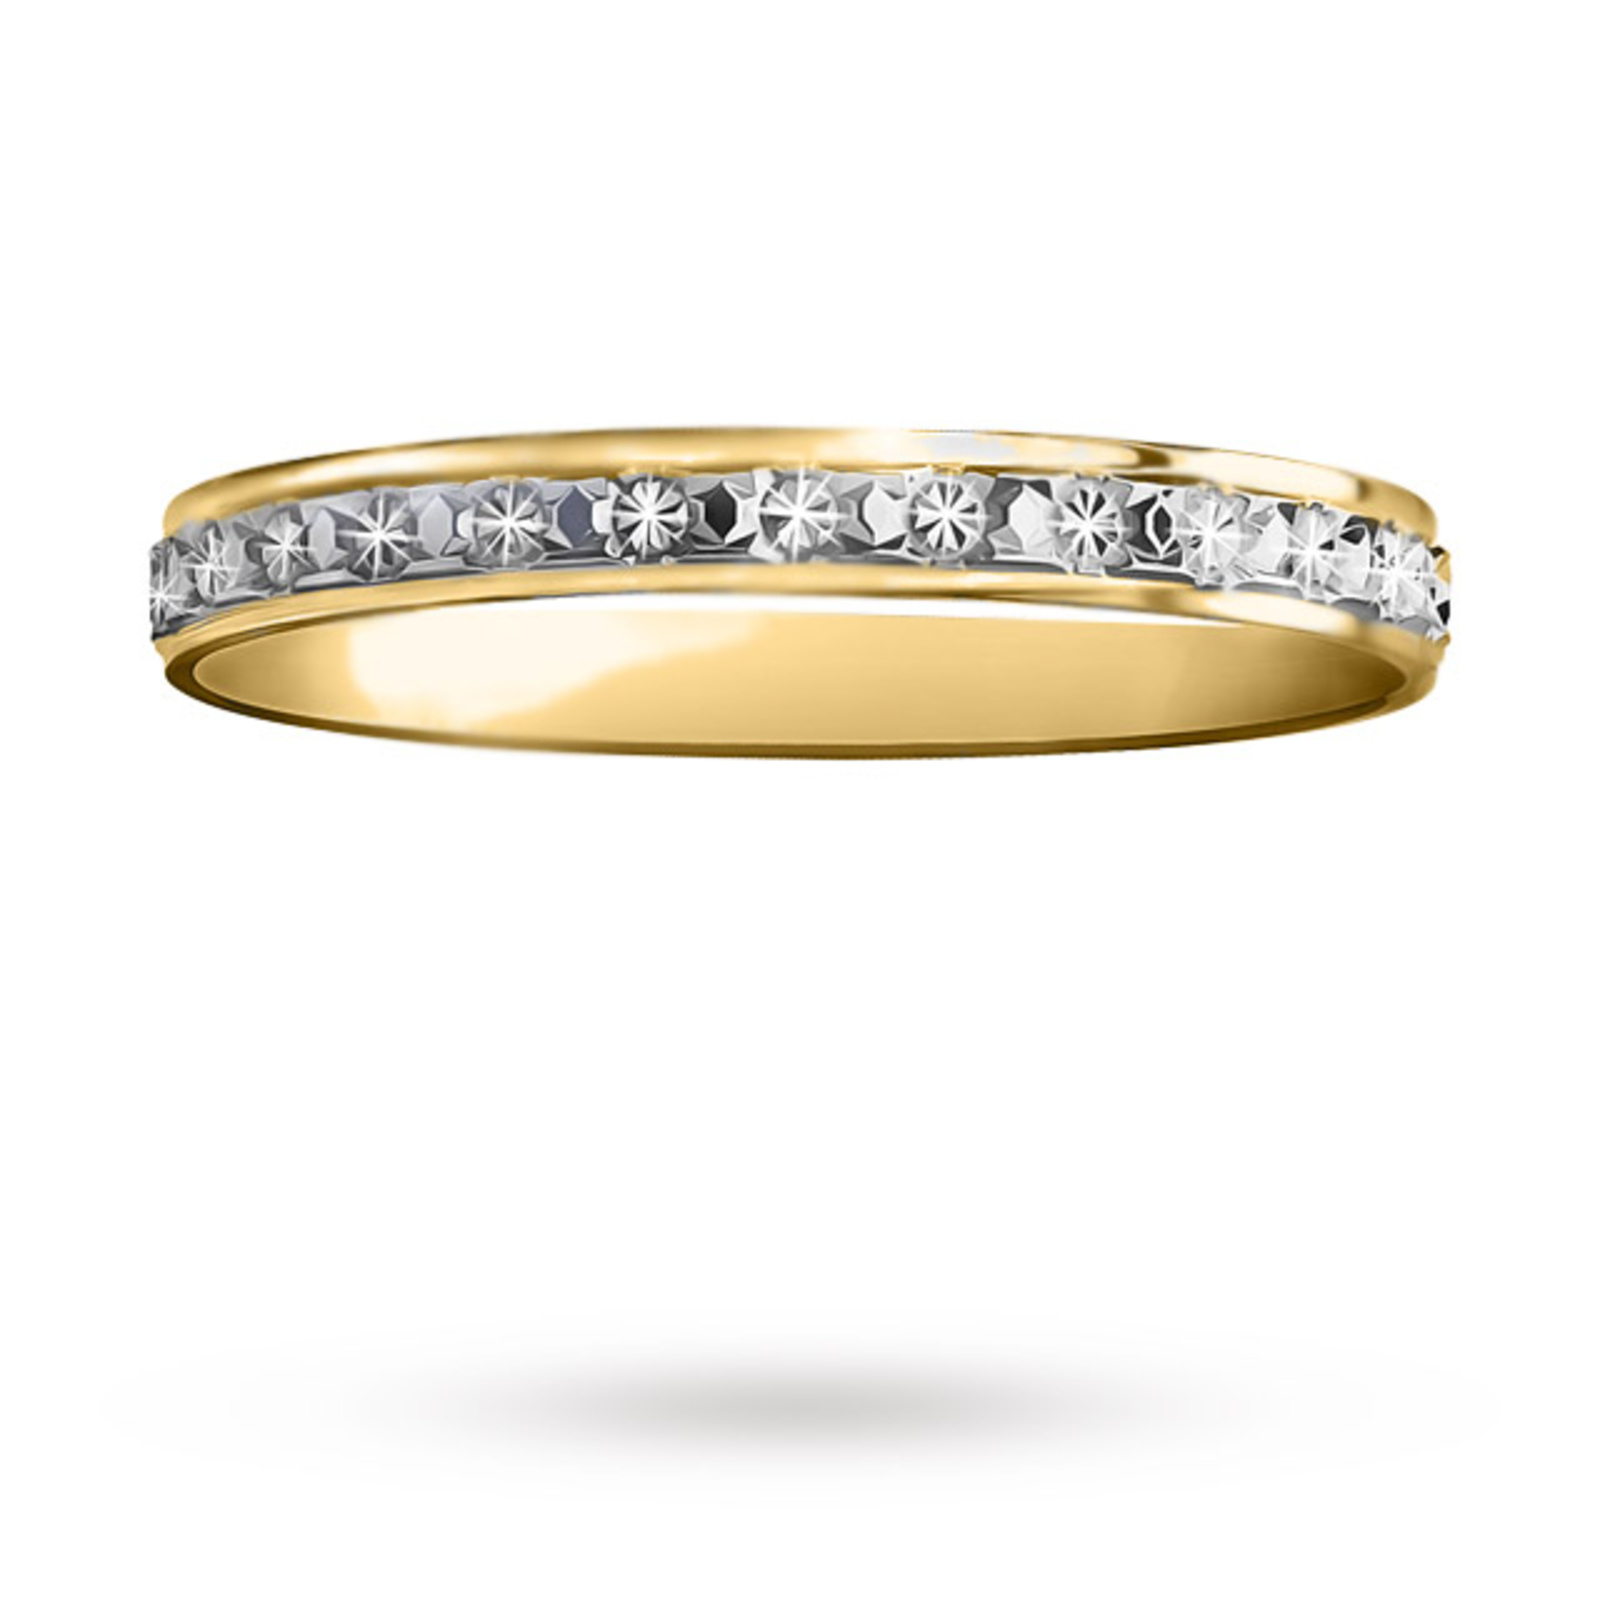 2.5mm ladies diamond cut wedding band in 18 carat yellow gold